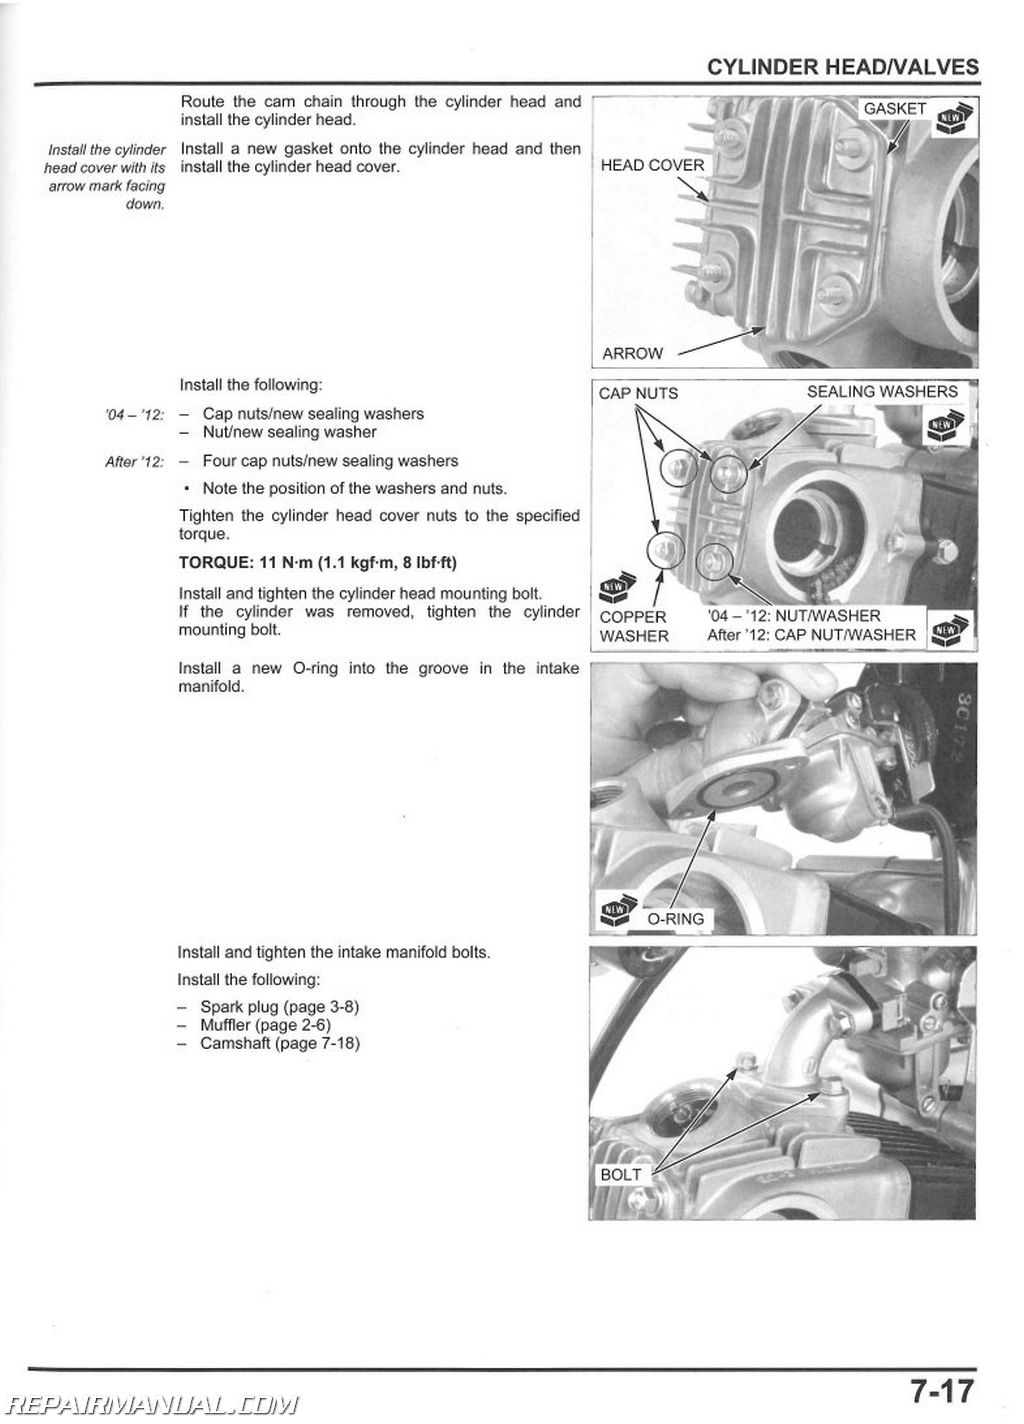 2004-2017 Honda CRF50F Motorcycle Service Manual